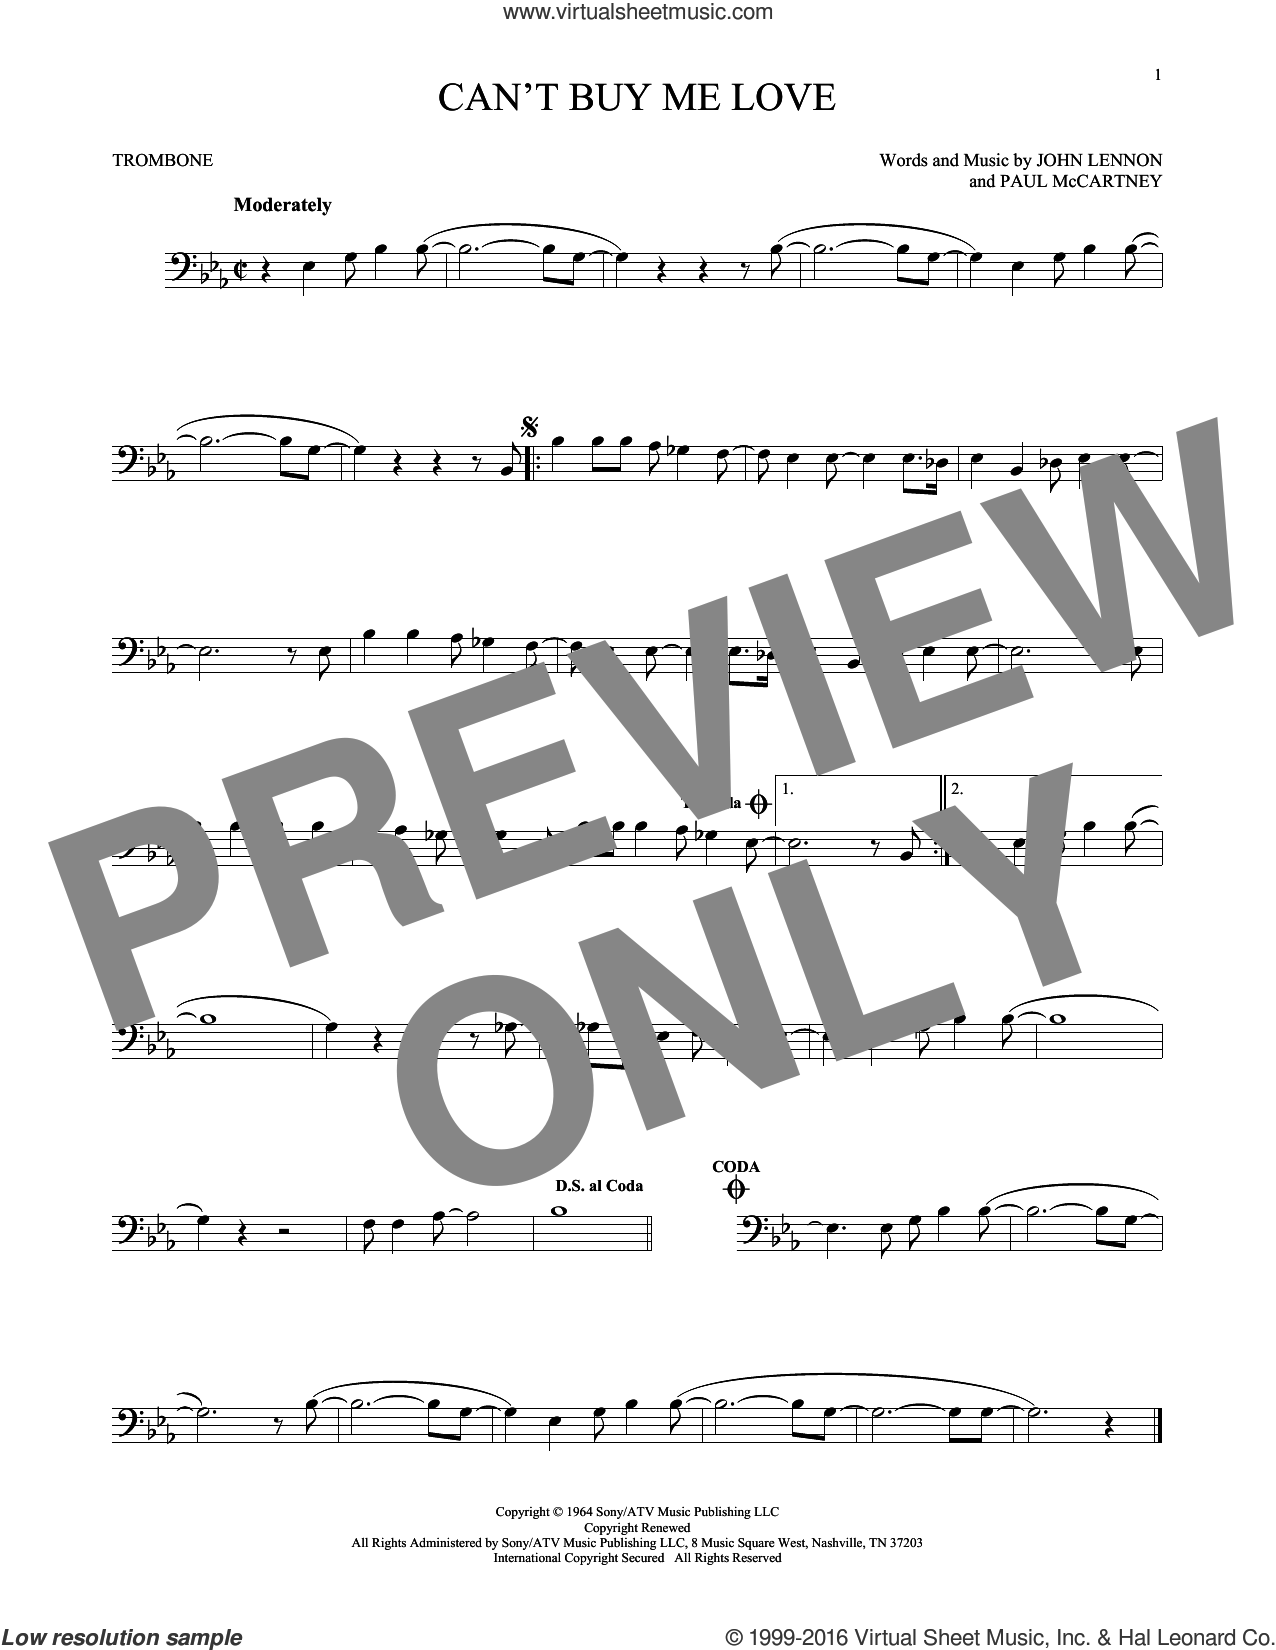 Can't Buy Me Love sheet music for trombone solo by Paul McCartney, The Beatles and John Lennon. Score Image Preview.